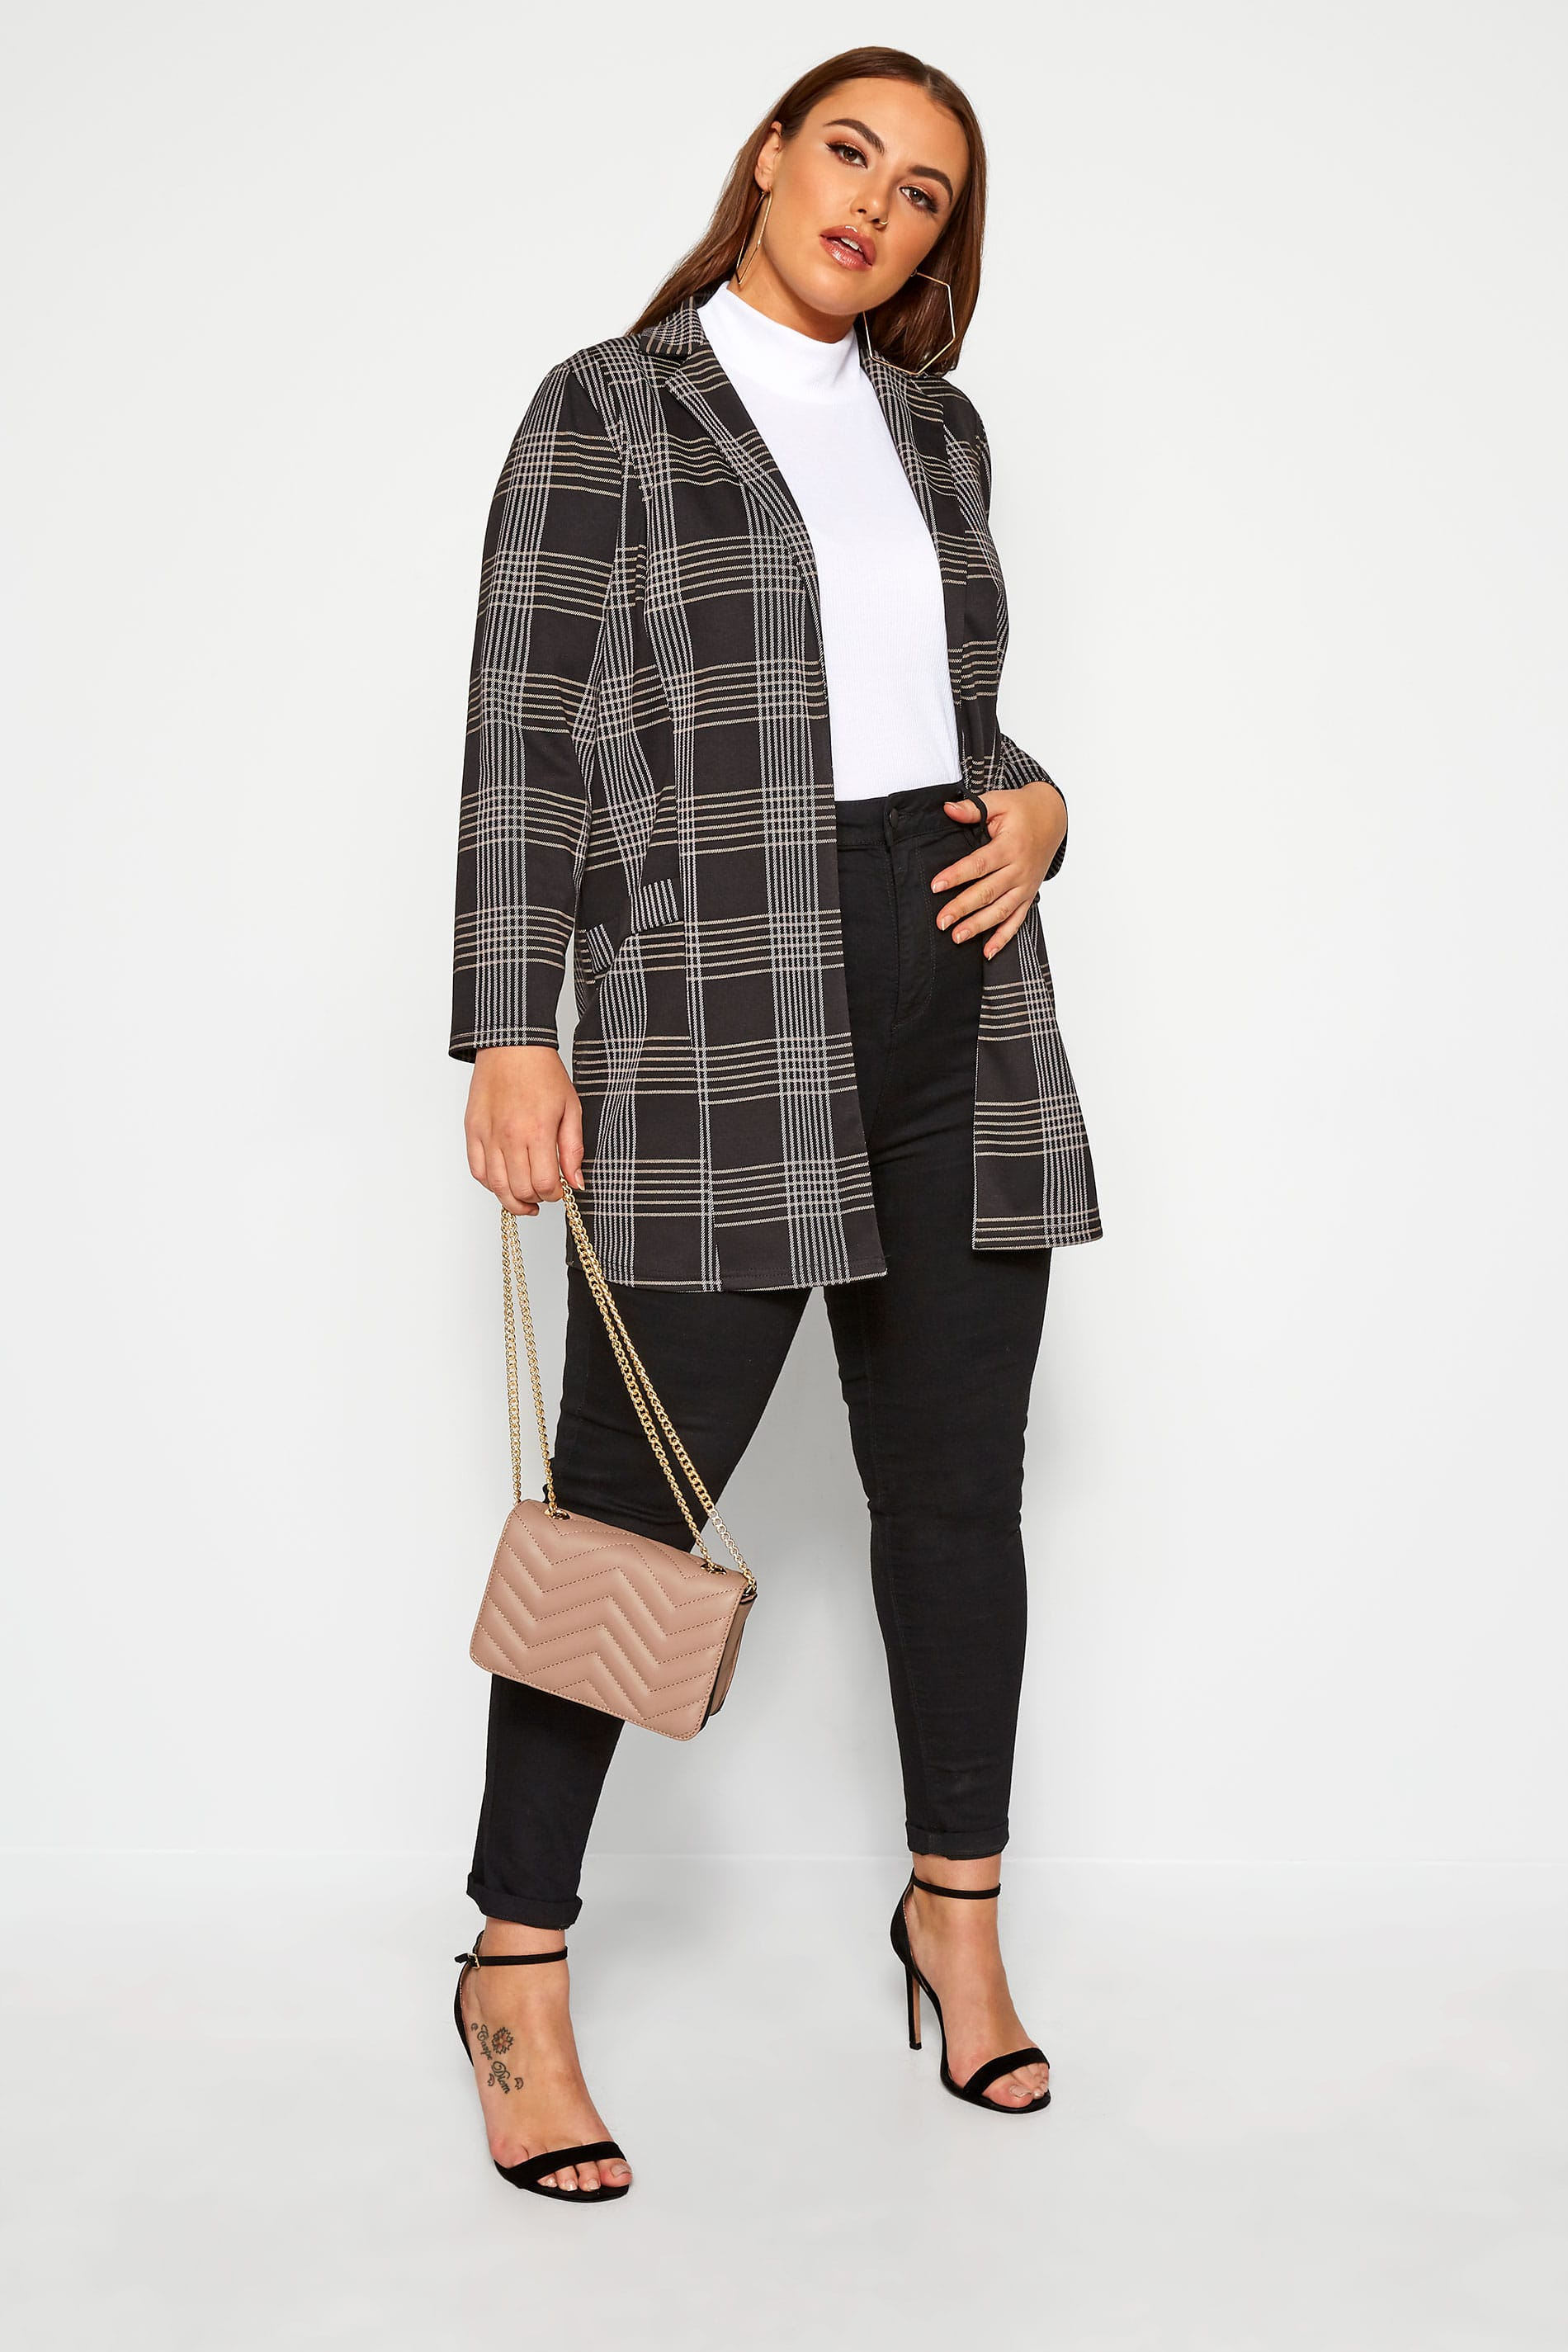 LIMITED COLLECTION Black Check Blazer